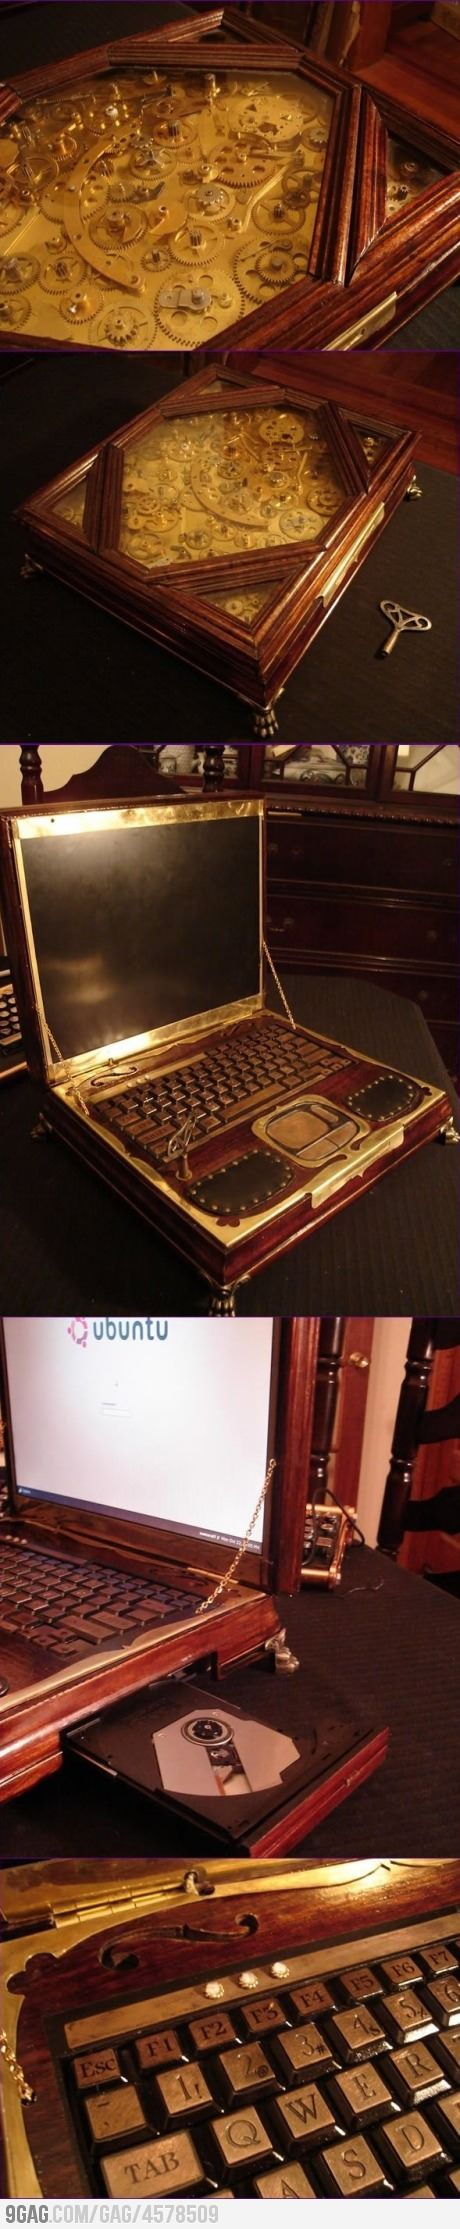 : Epic Steampunk, So Amazing, Awesome, Funny Pictures, Steampunk Tech, Steampunk Laptops, Art, Steam Punk, Steampunk Ish